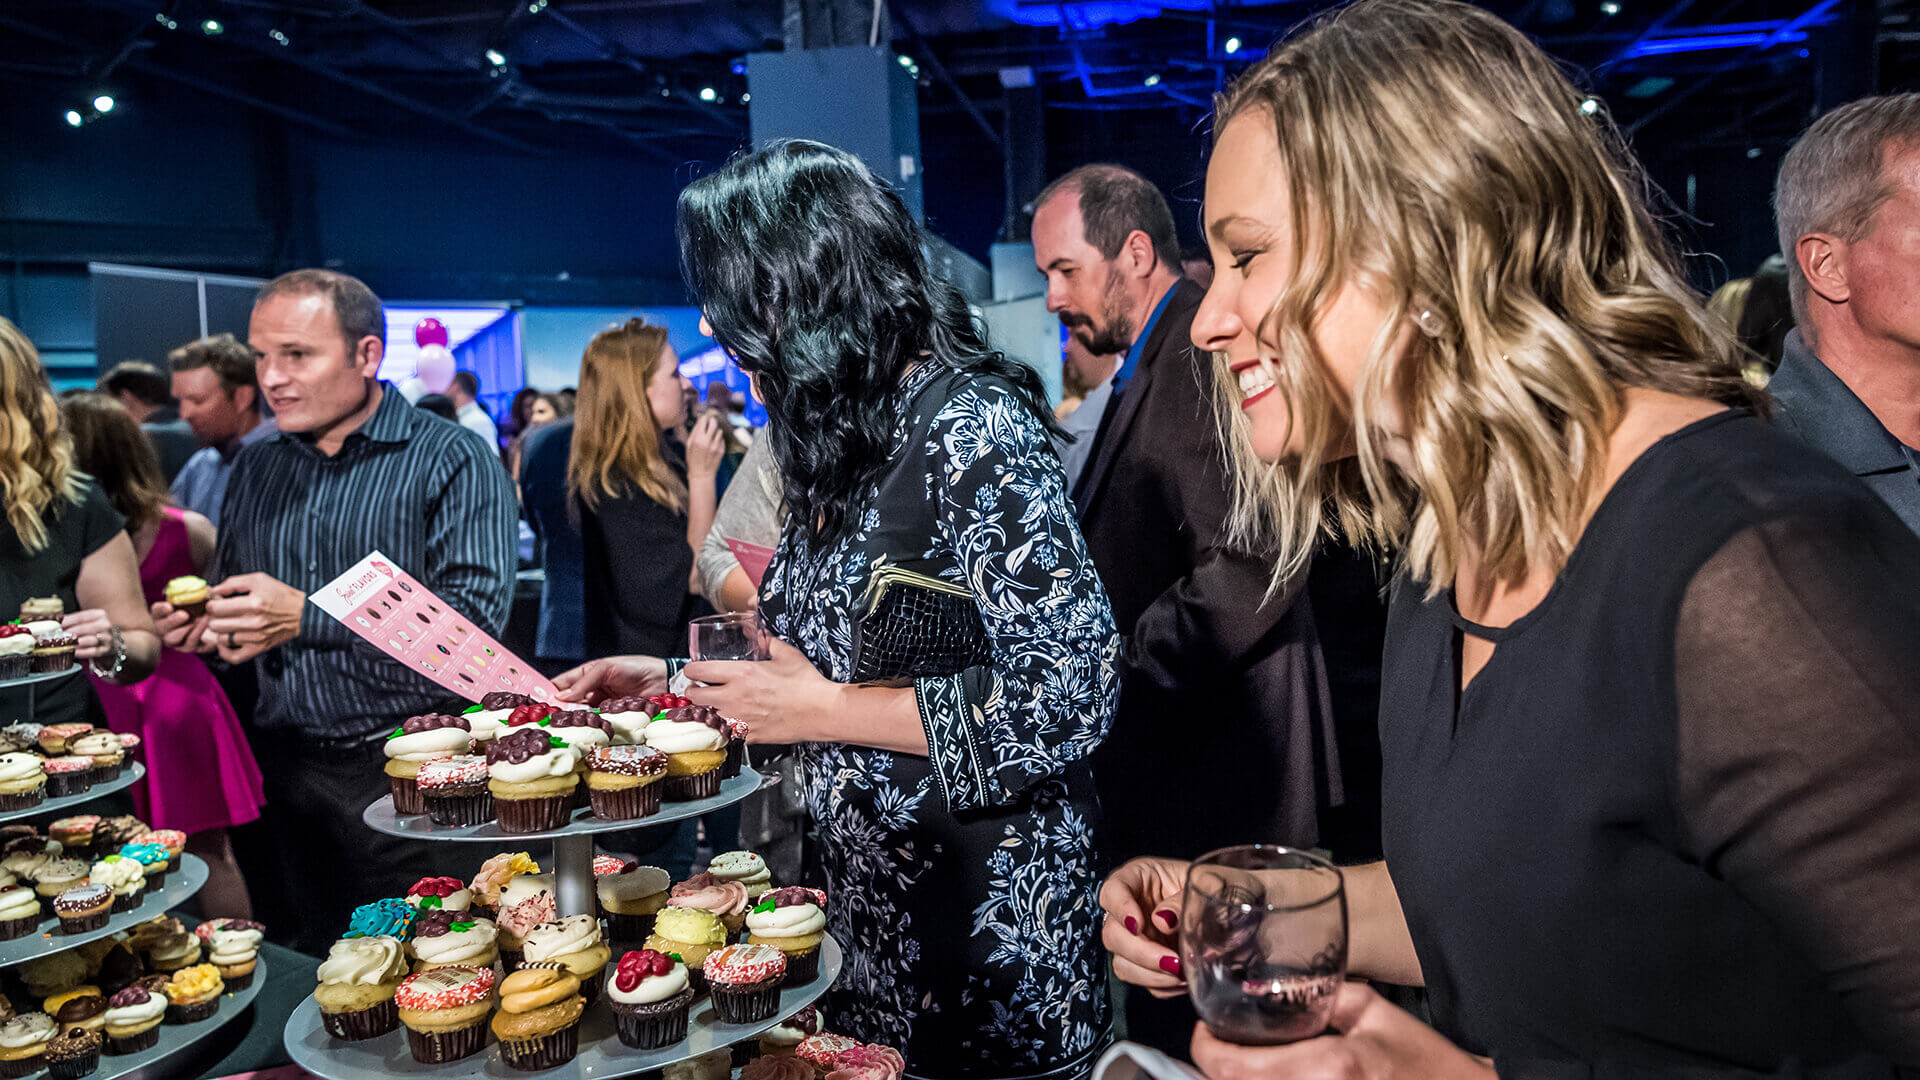 Guests picking up cupcakes at a food table.